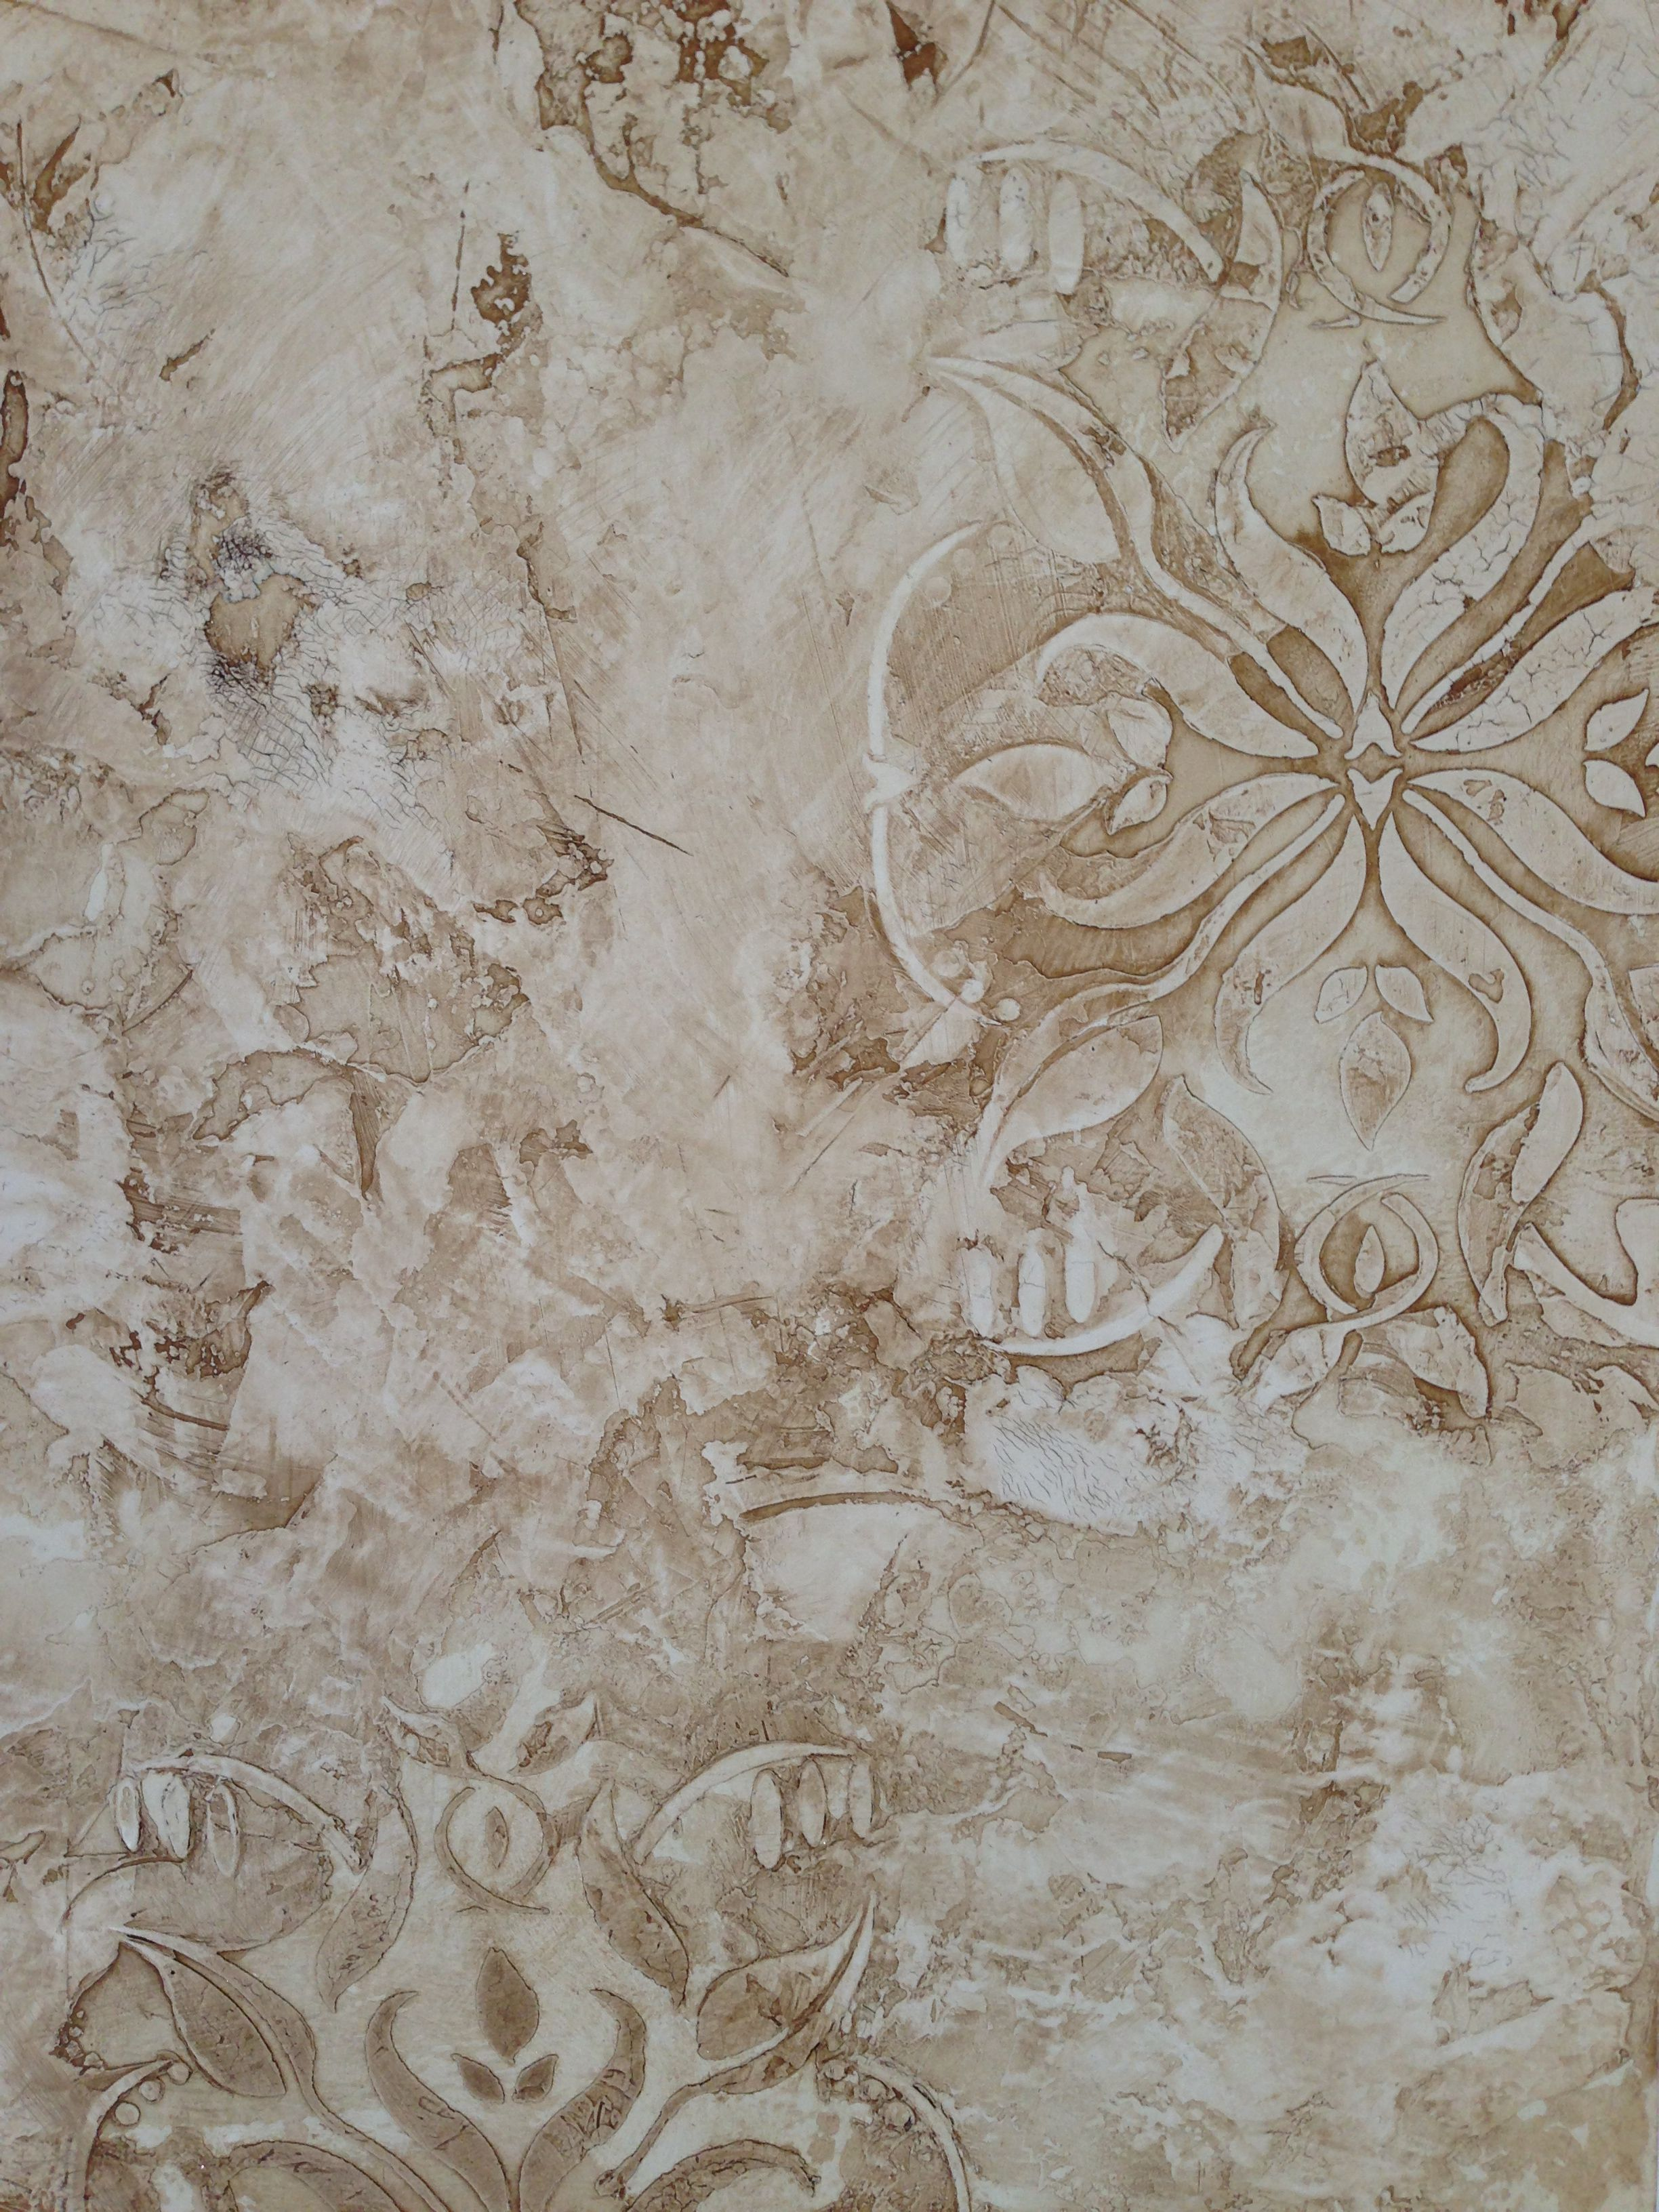 Venetian plaster finish with embedded stencil designs decorative venetian plaster finish with embedded stencil designs amipublicfo Gallery